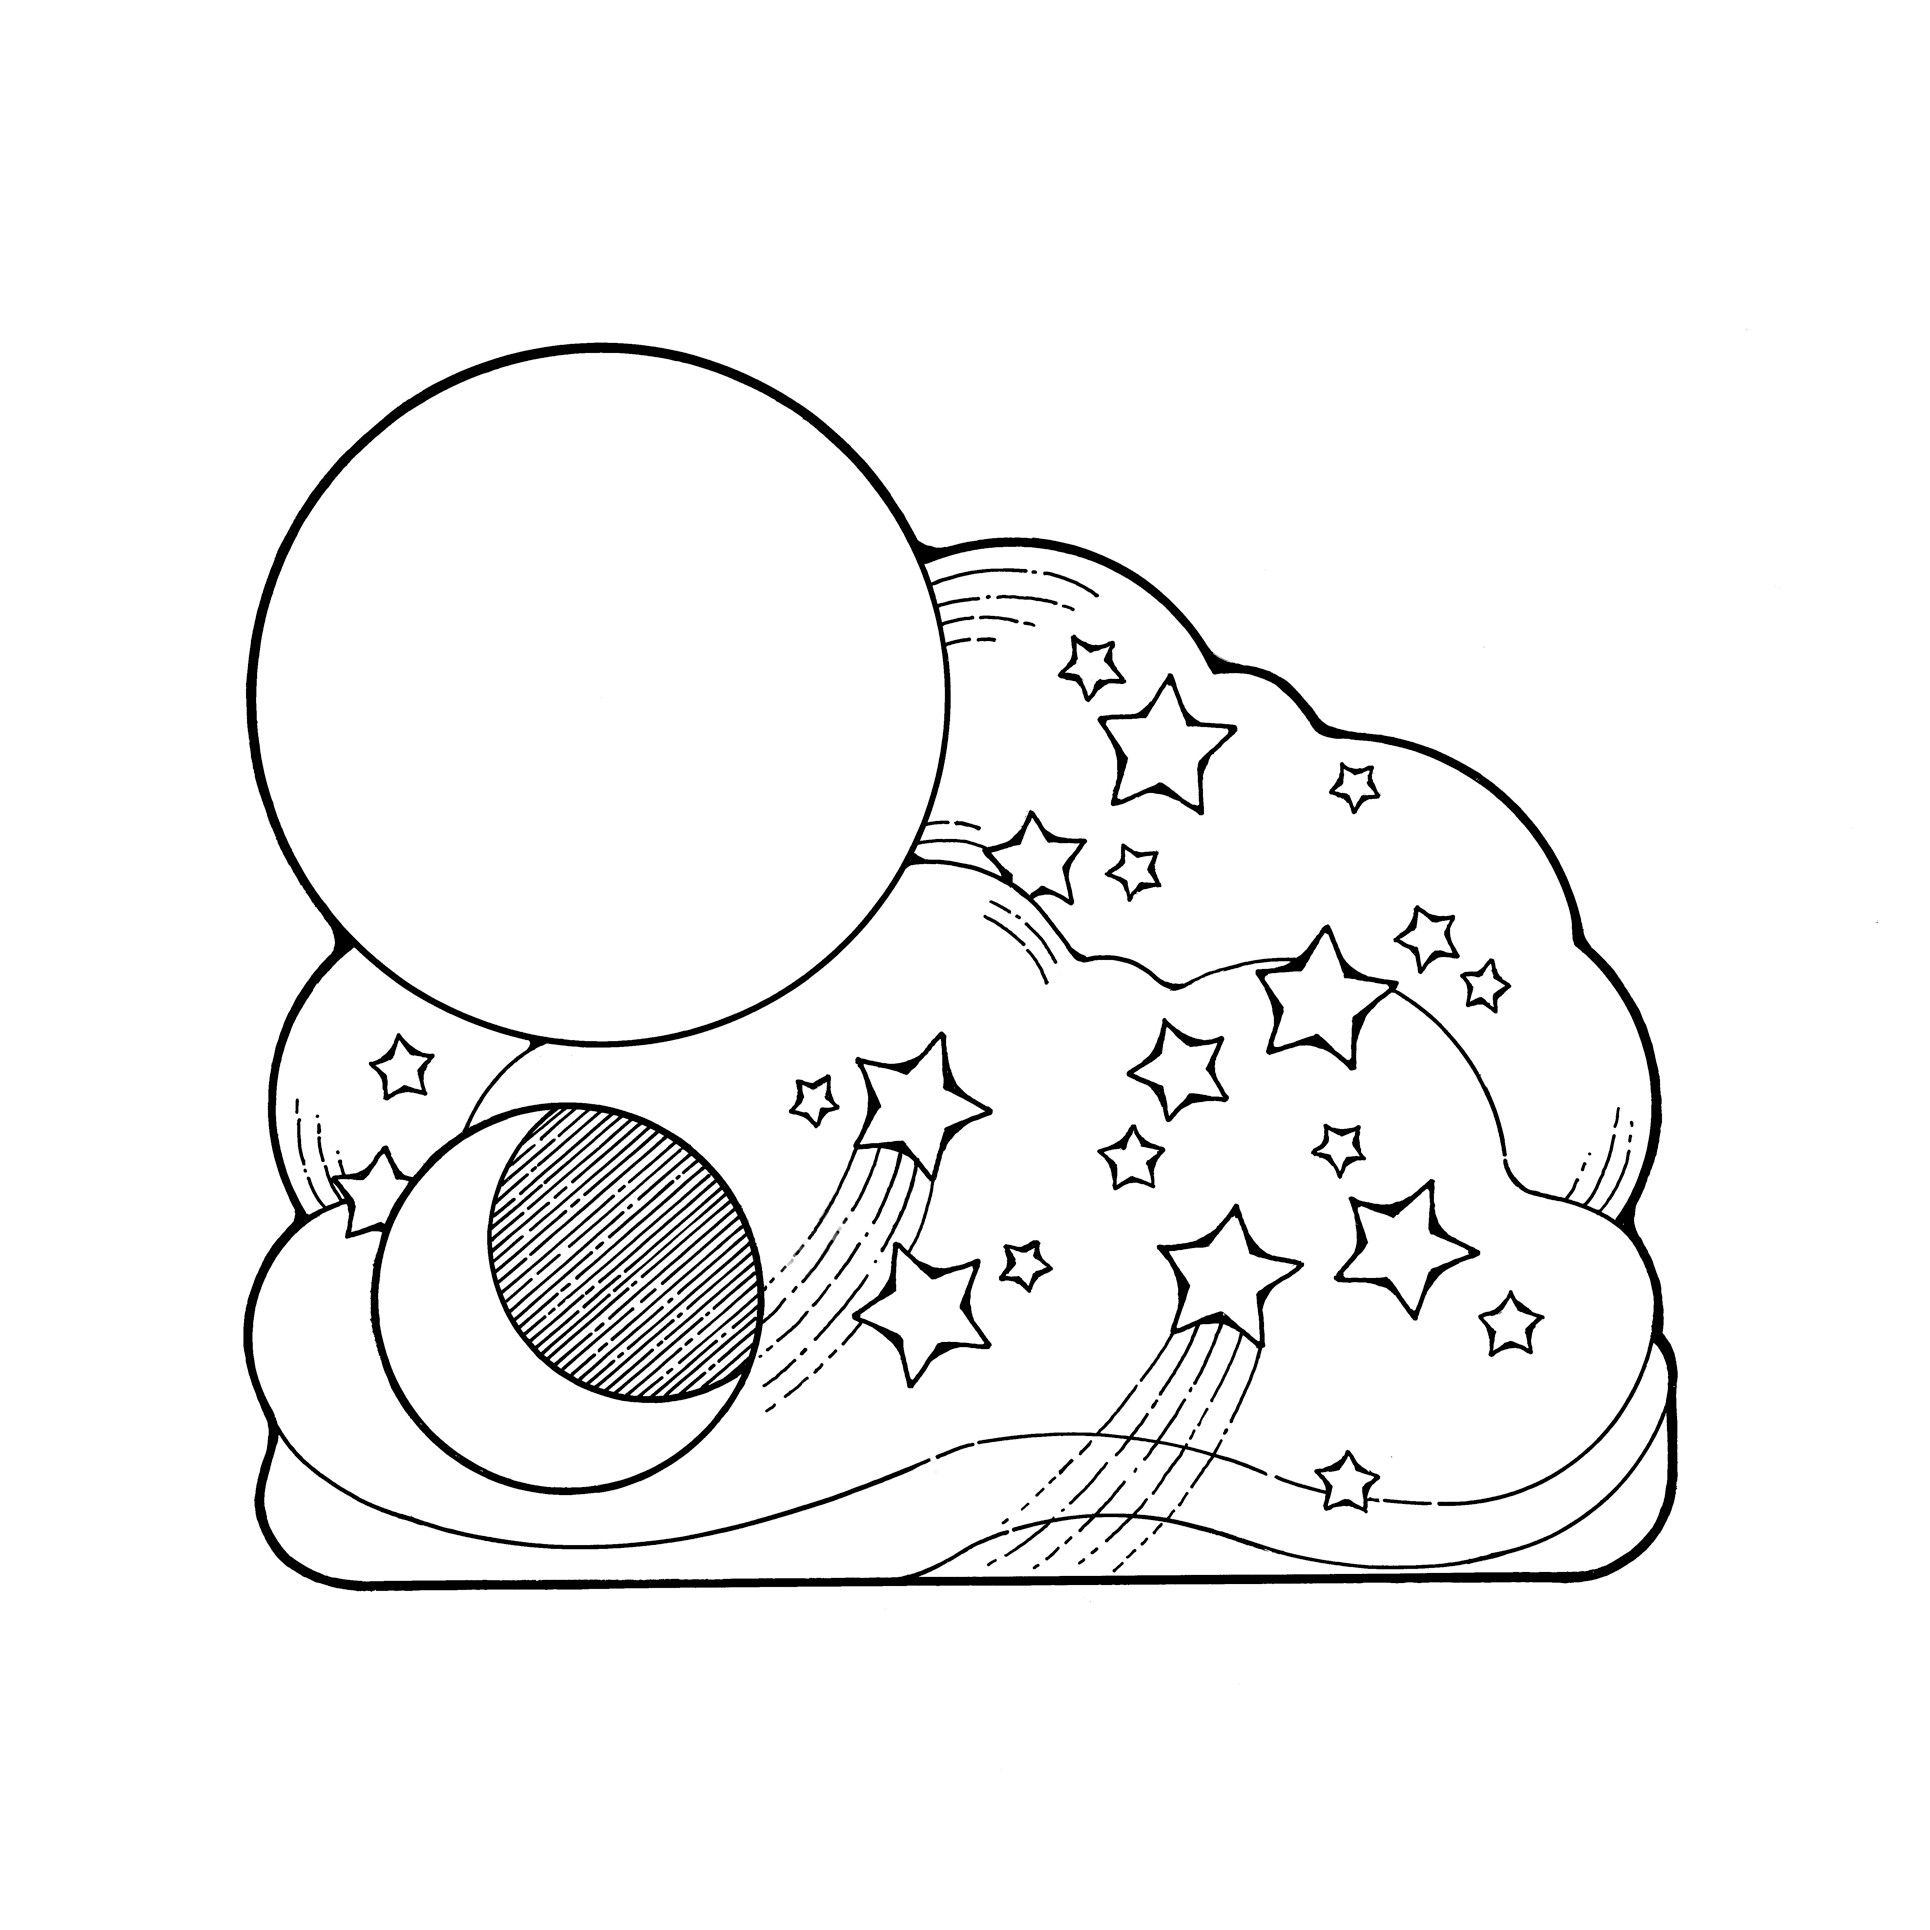 An illustration of the sun, moon, and stars.